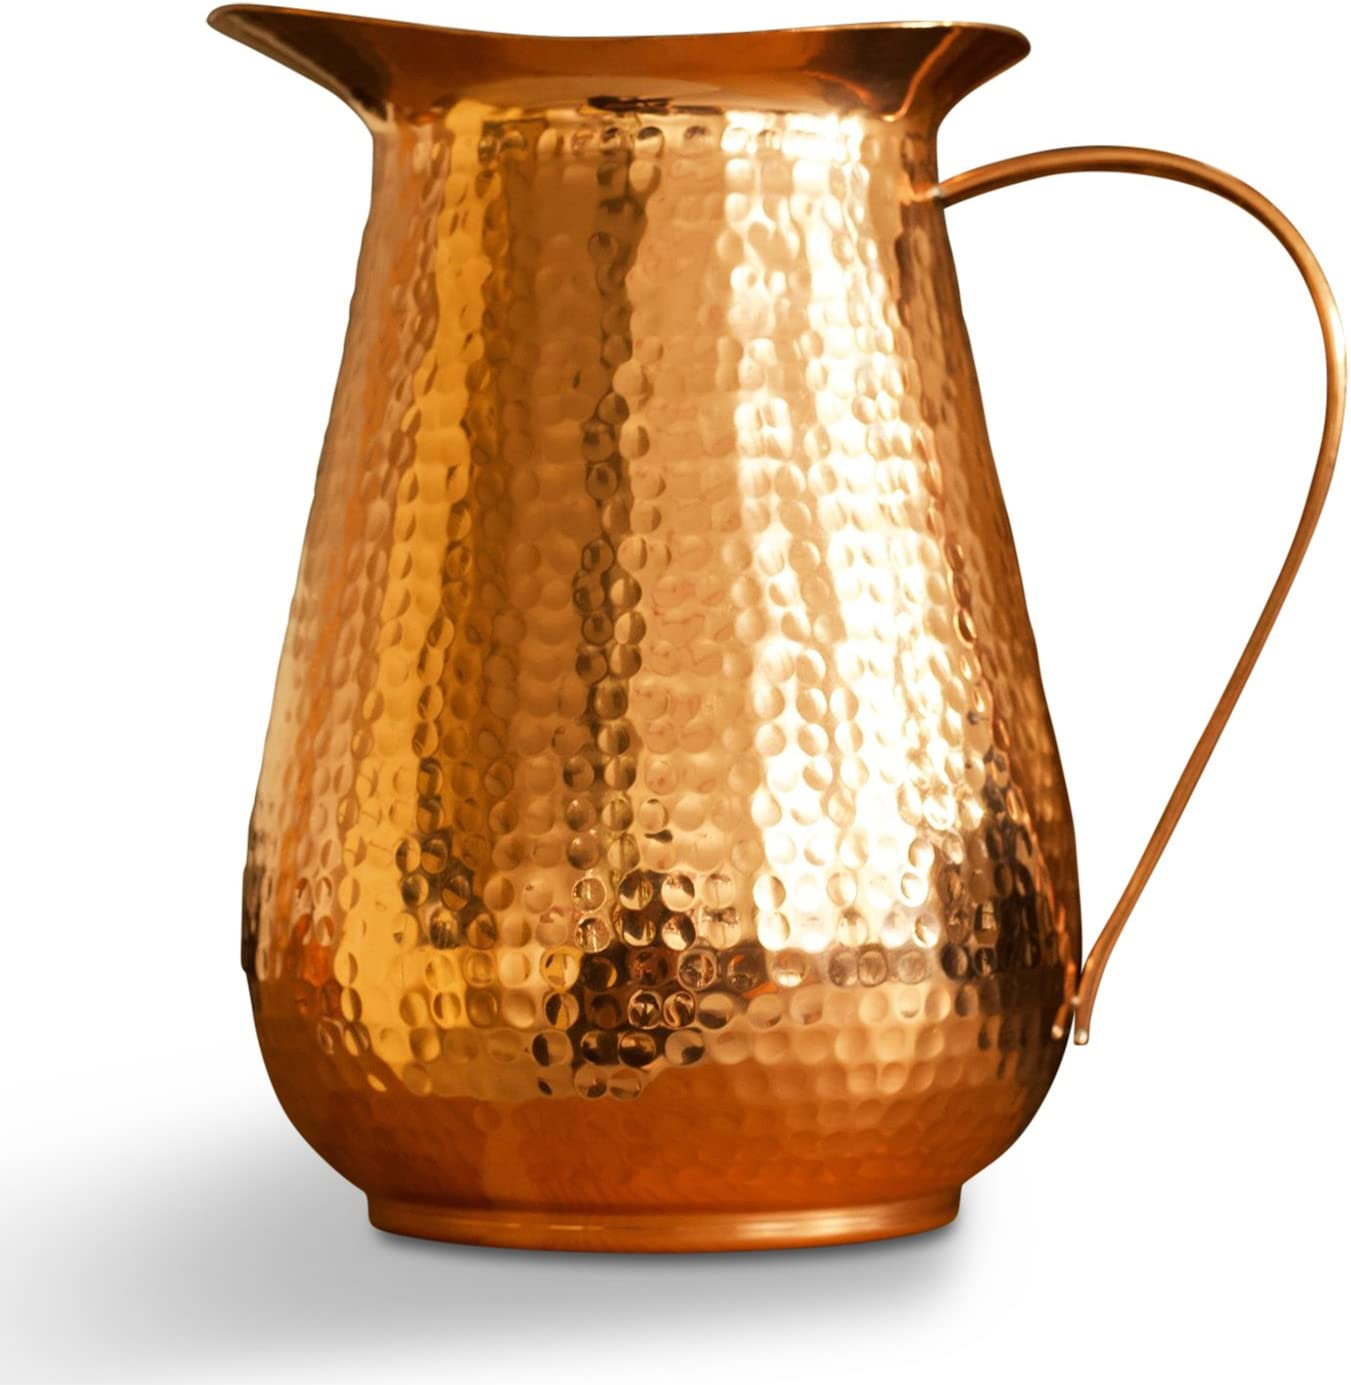 Kosdeg Copper Pitcher Extra Large 68 Oz - Drink More Water Lower Your Sugar Intake And Enjoy The Health Benefits Immediately - 100% Pure Copper Handmade Hammered Jug, Made From Heavy Gauge Copper